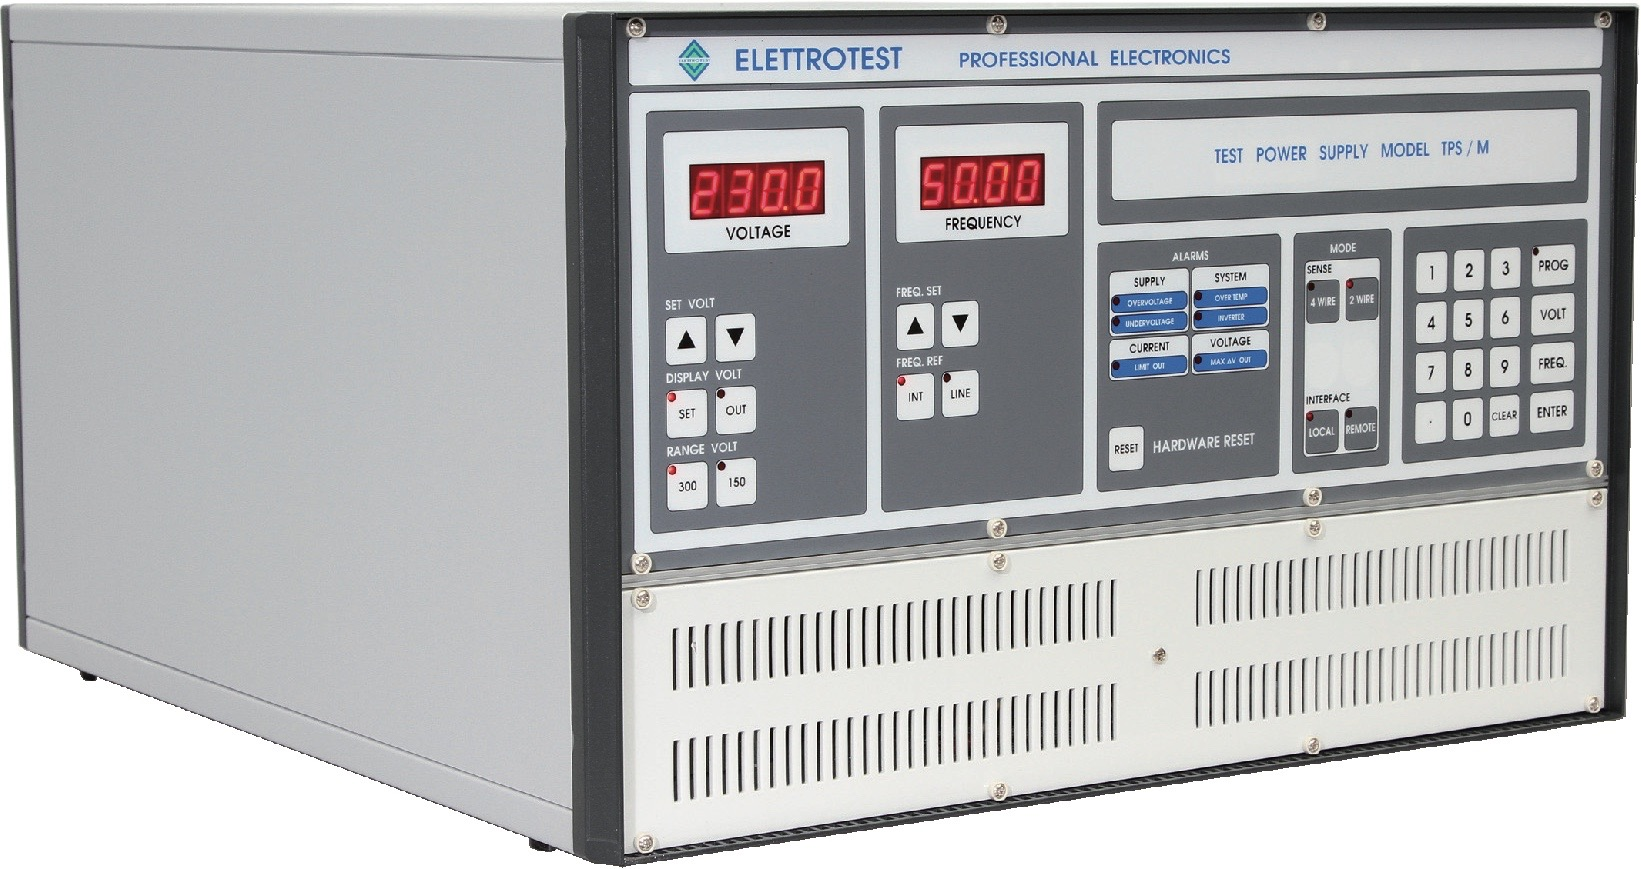 Elettrotest TPS Series single-phase AC power supplies